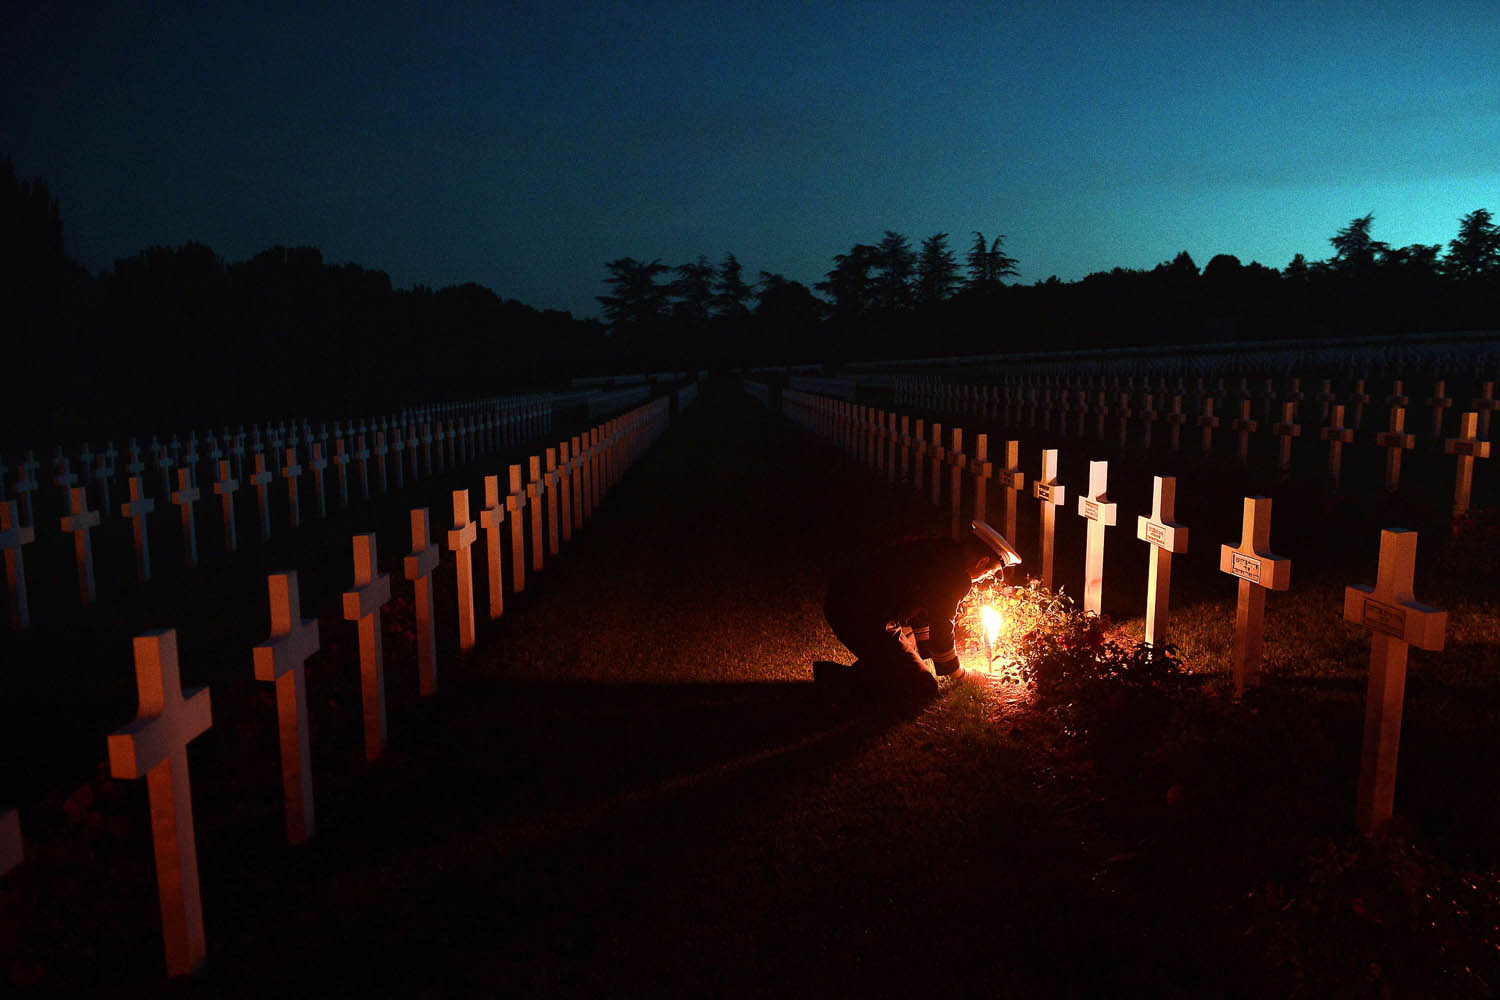 Jun. 22, 2014. Torchlights are placed next to soldiers' tombs at the Douaumont's boneyard, eastern France, during the annual event known as The Four Days of Verdun, a night parade of veterans, as they commemorate the Verdun battle 98th anniversary.